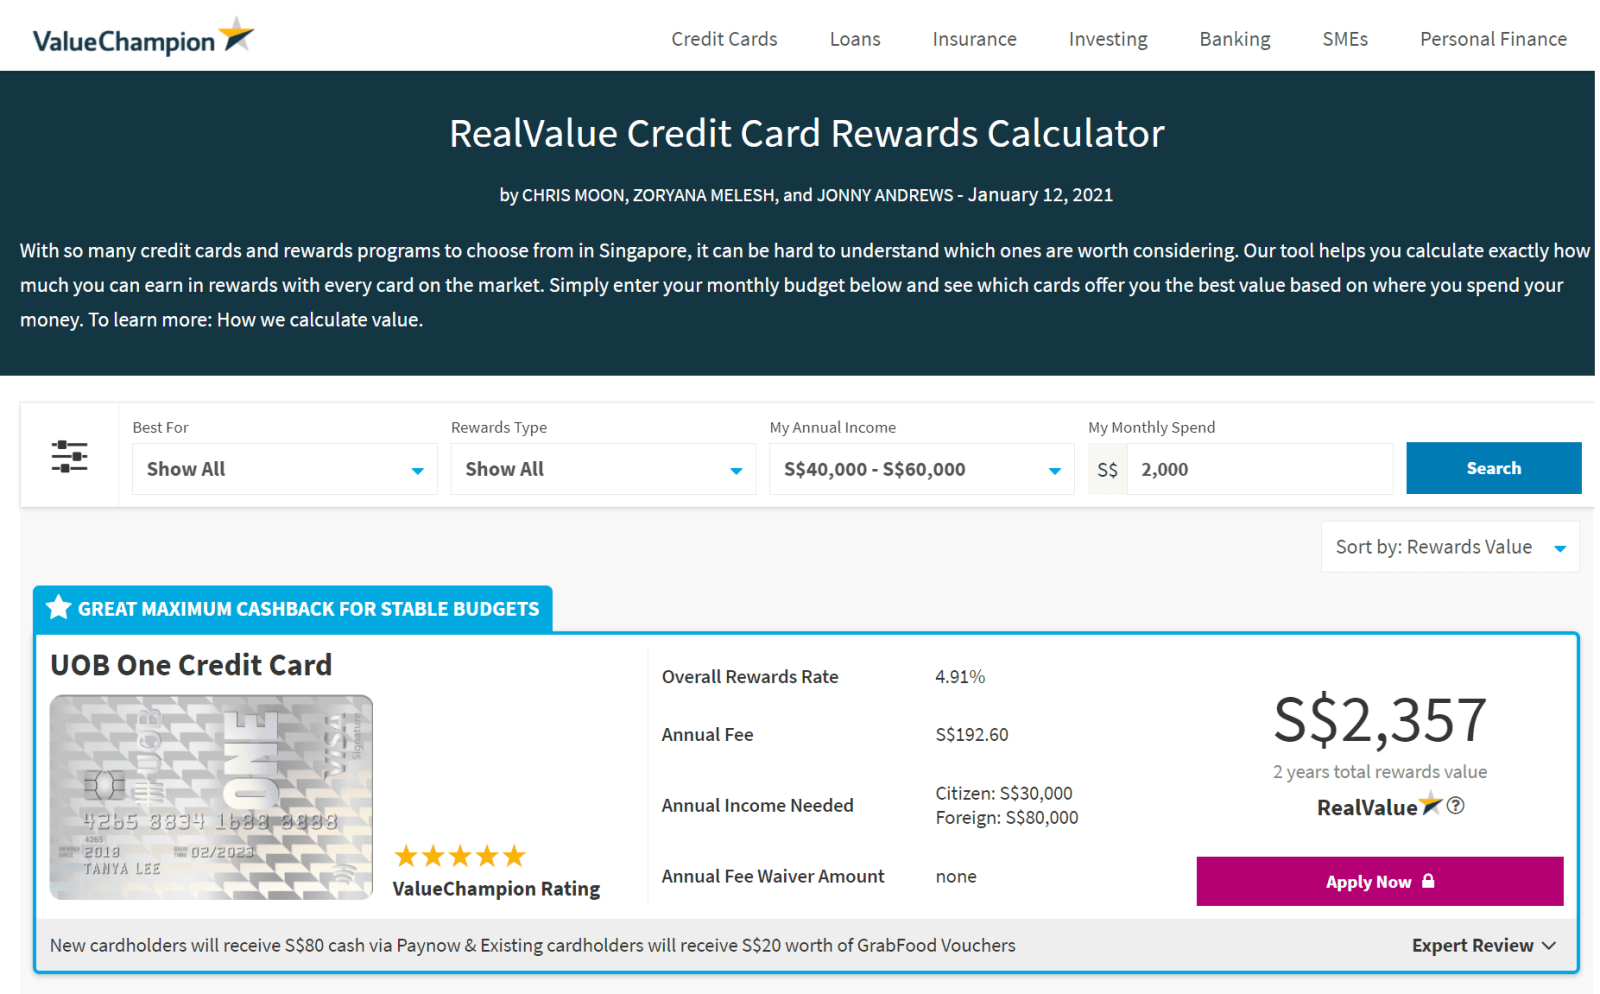 ValueChampion's RealValue Credit Card Comparison Tool calculates the dollar-value of different credit cards rewards programmes, such as 5% of cashback on groceries up to S$50 per month or 1.2 miles per S$1 spent locally so that consumers can understand which card best fits her needs at a glance.